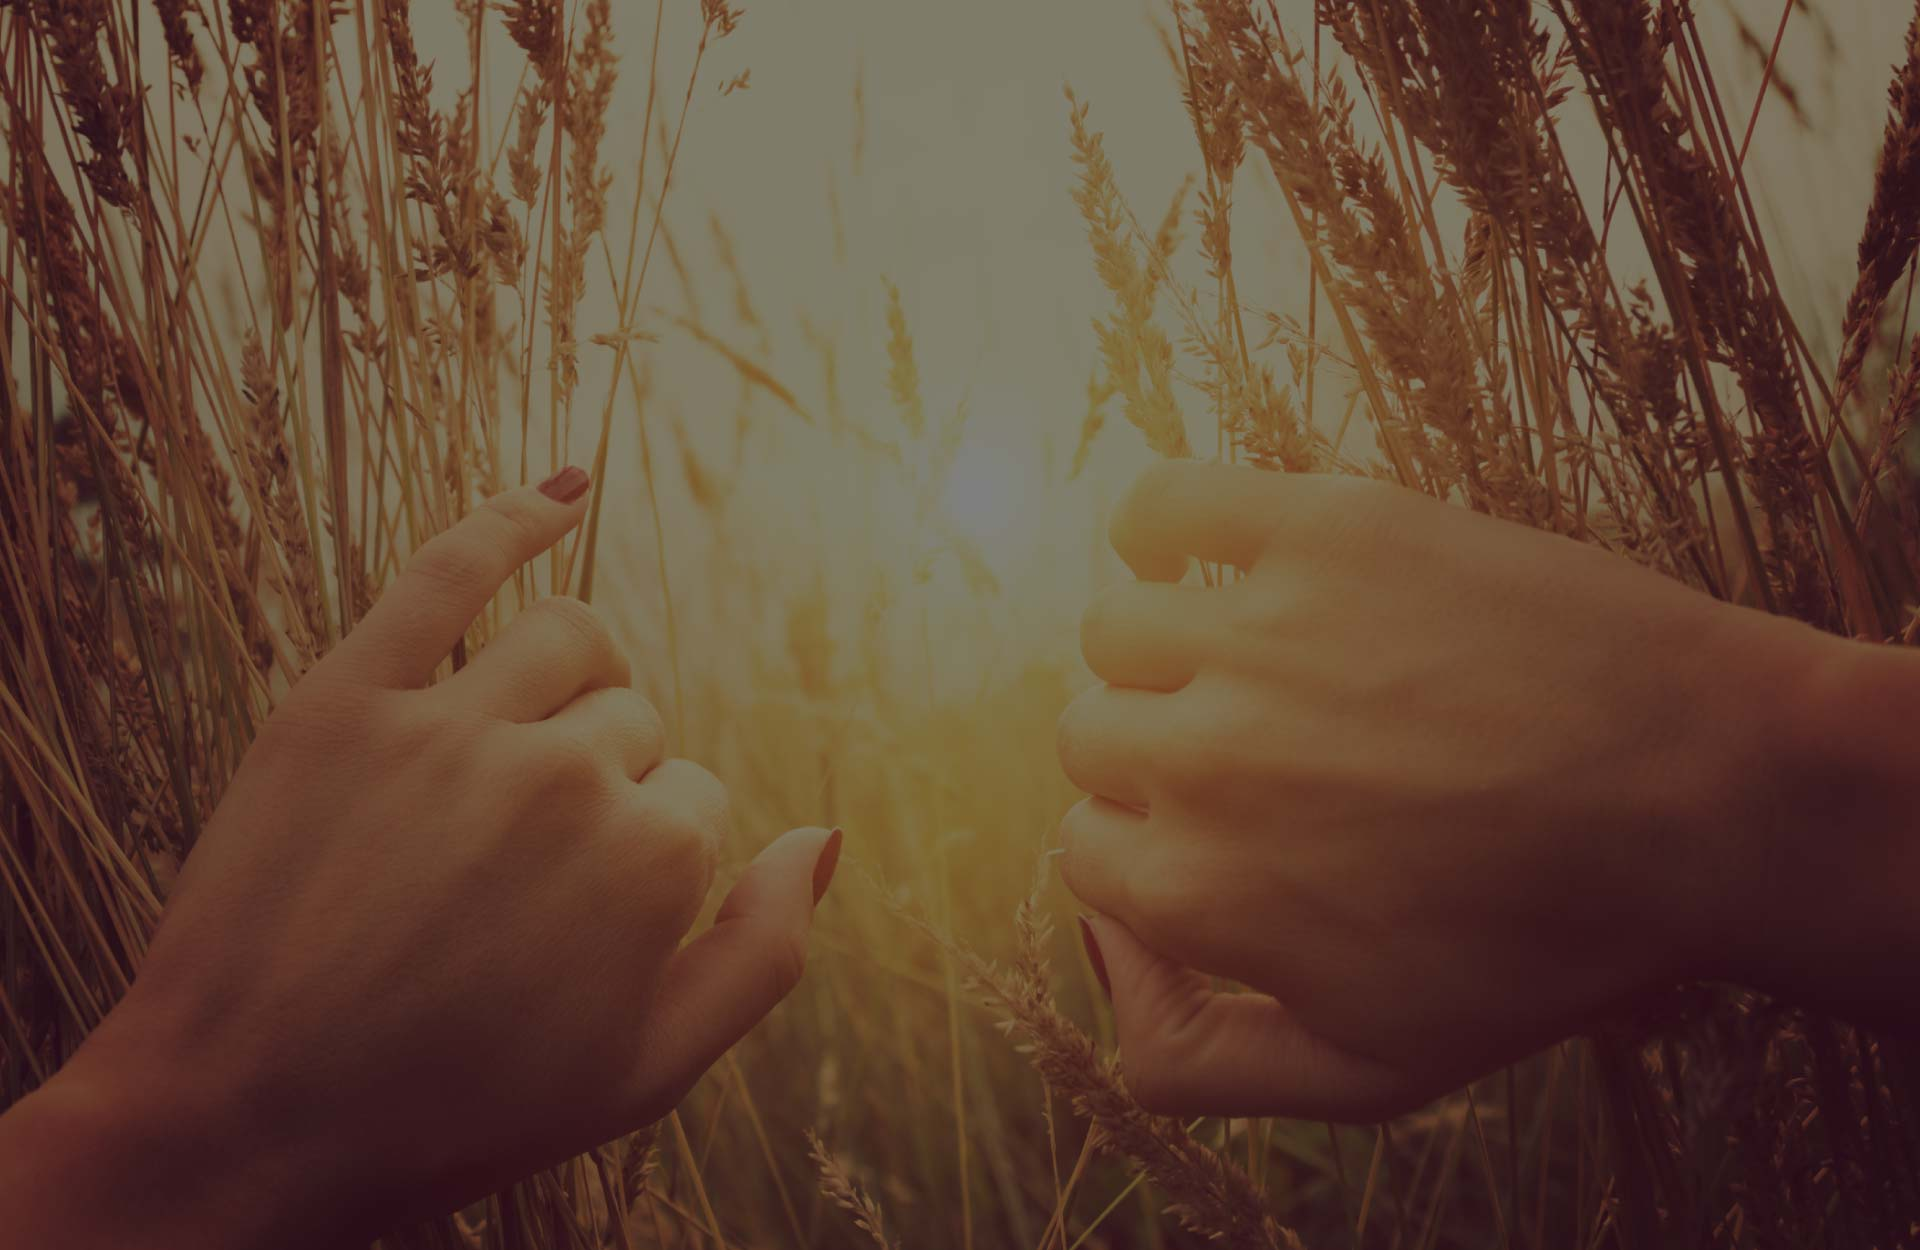 close-up of woman's hands peeking through stalks of wheat, looking into sunset